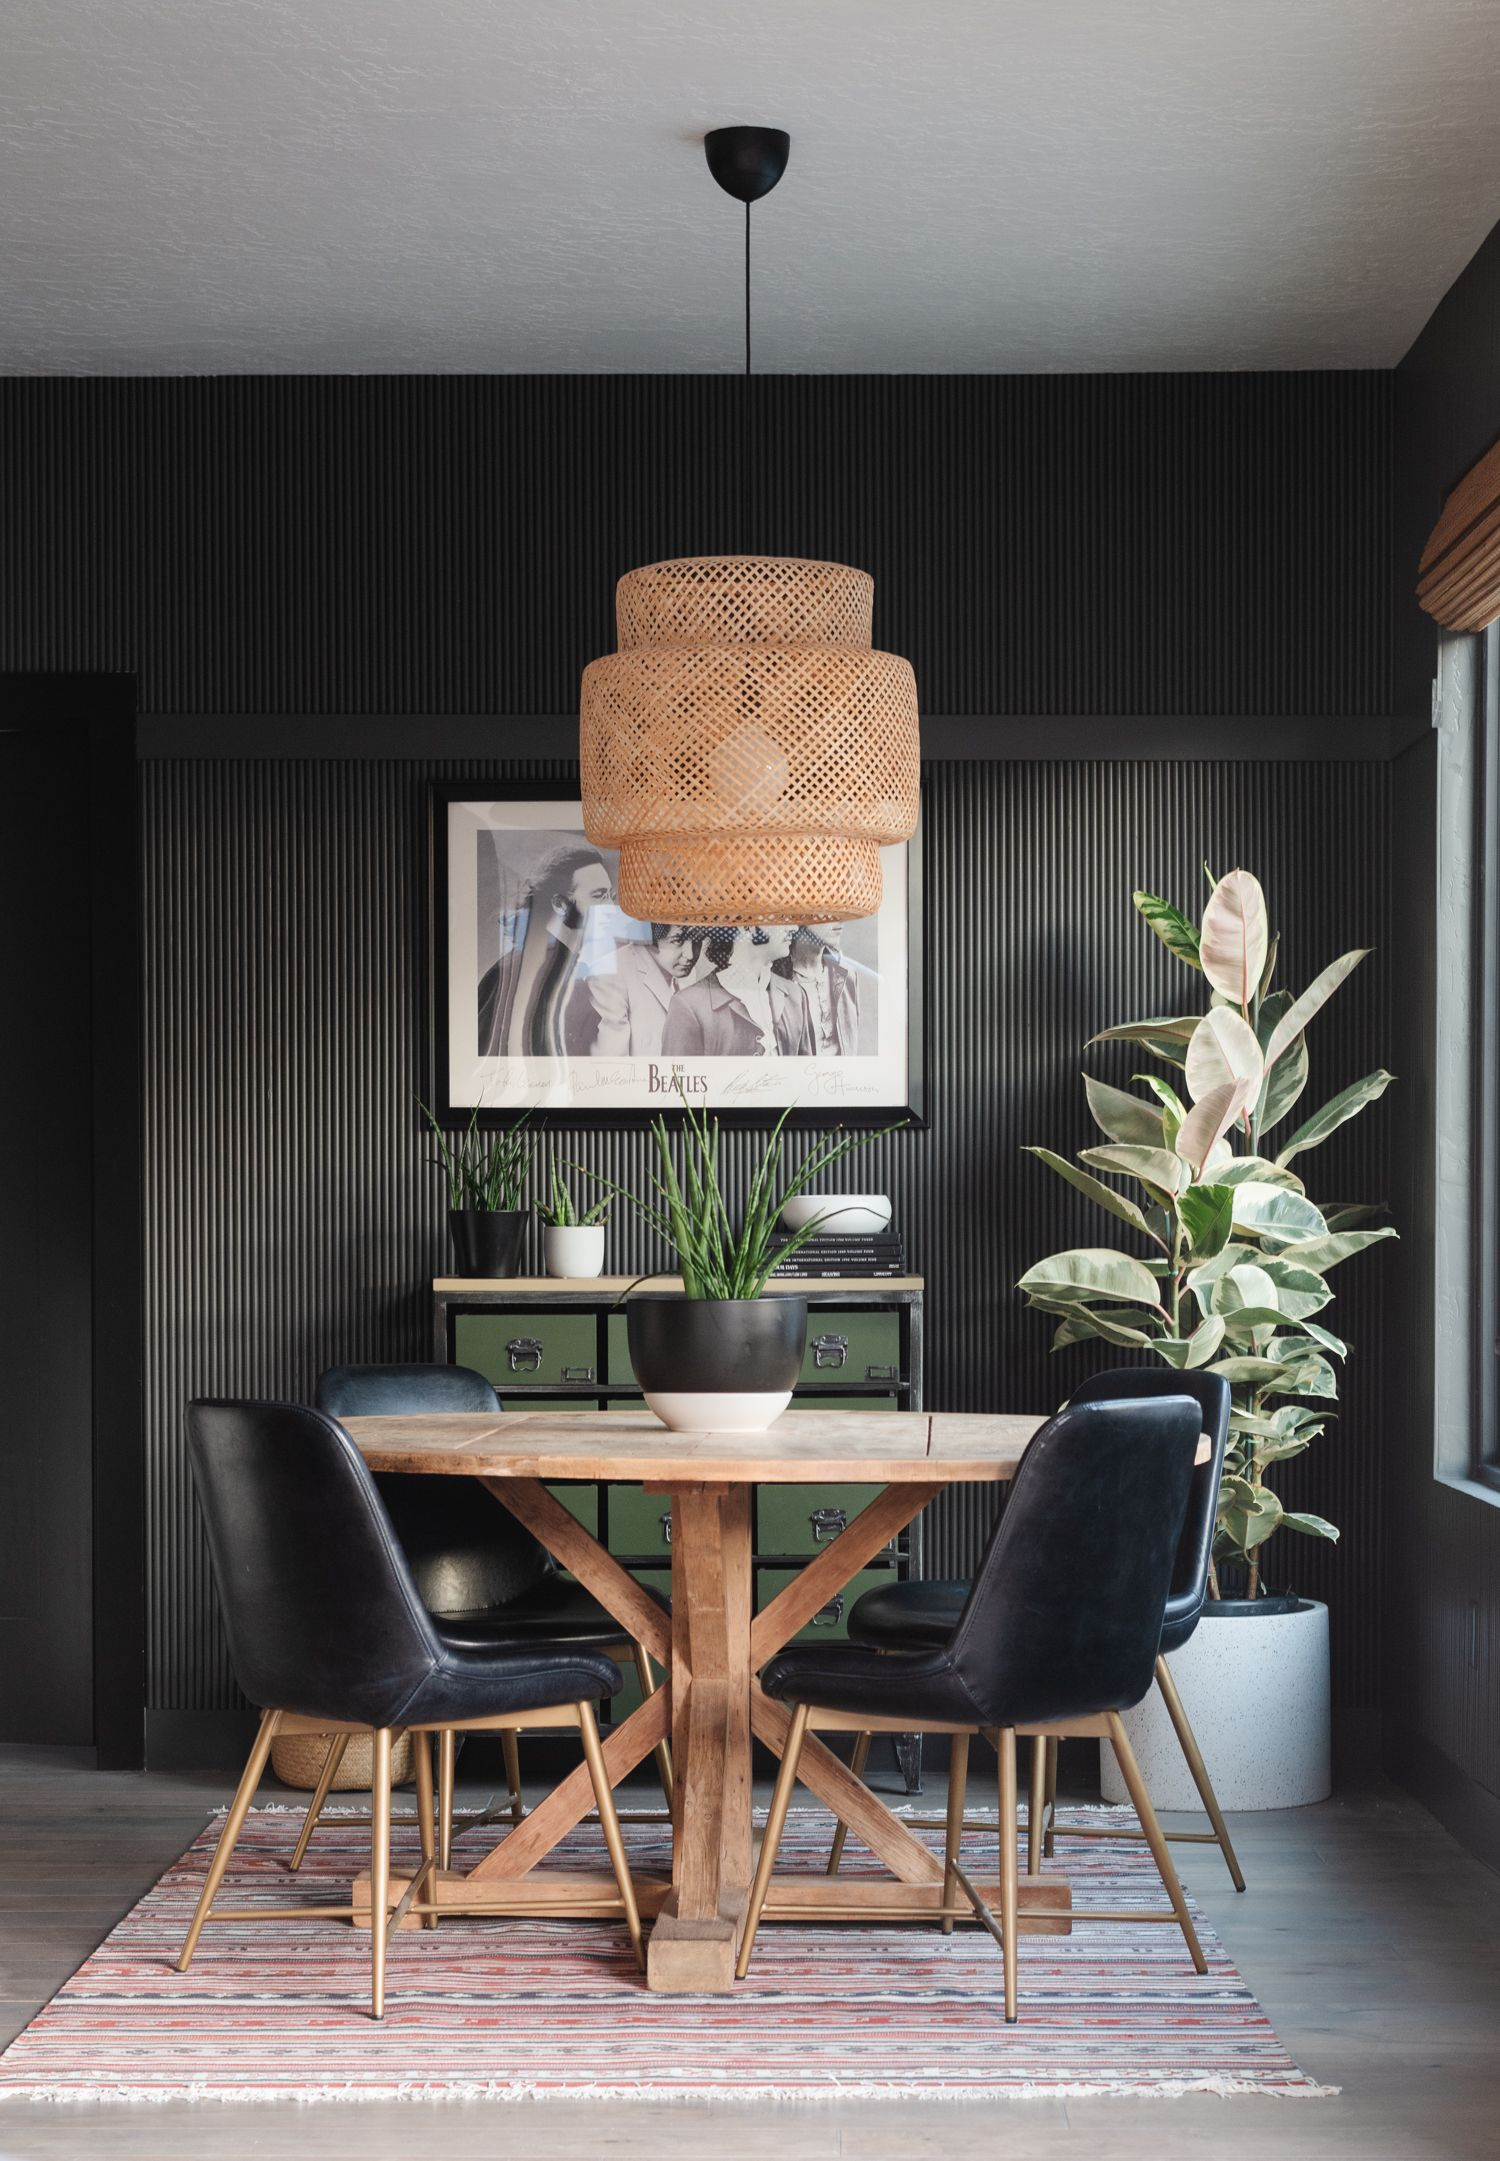 Sherwin Williams 2021 Color of the Year Is....   Home decor, Wall treatments, Decor